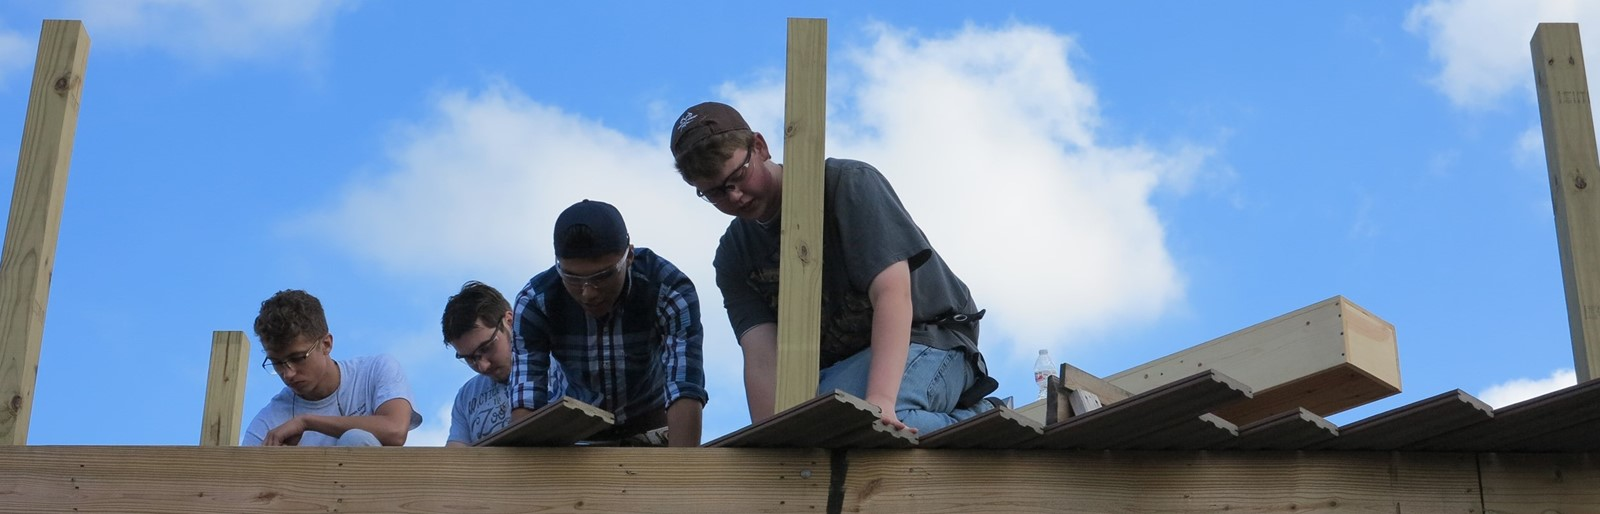 Carpentry students at work